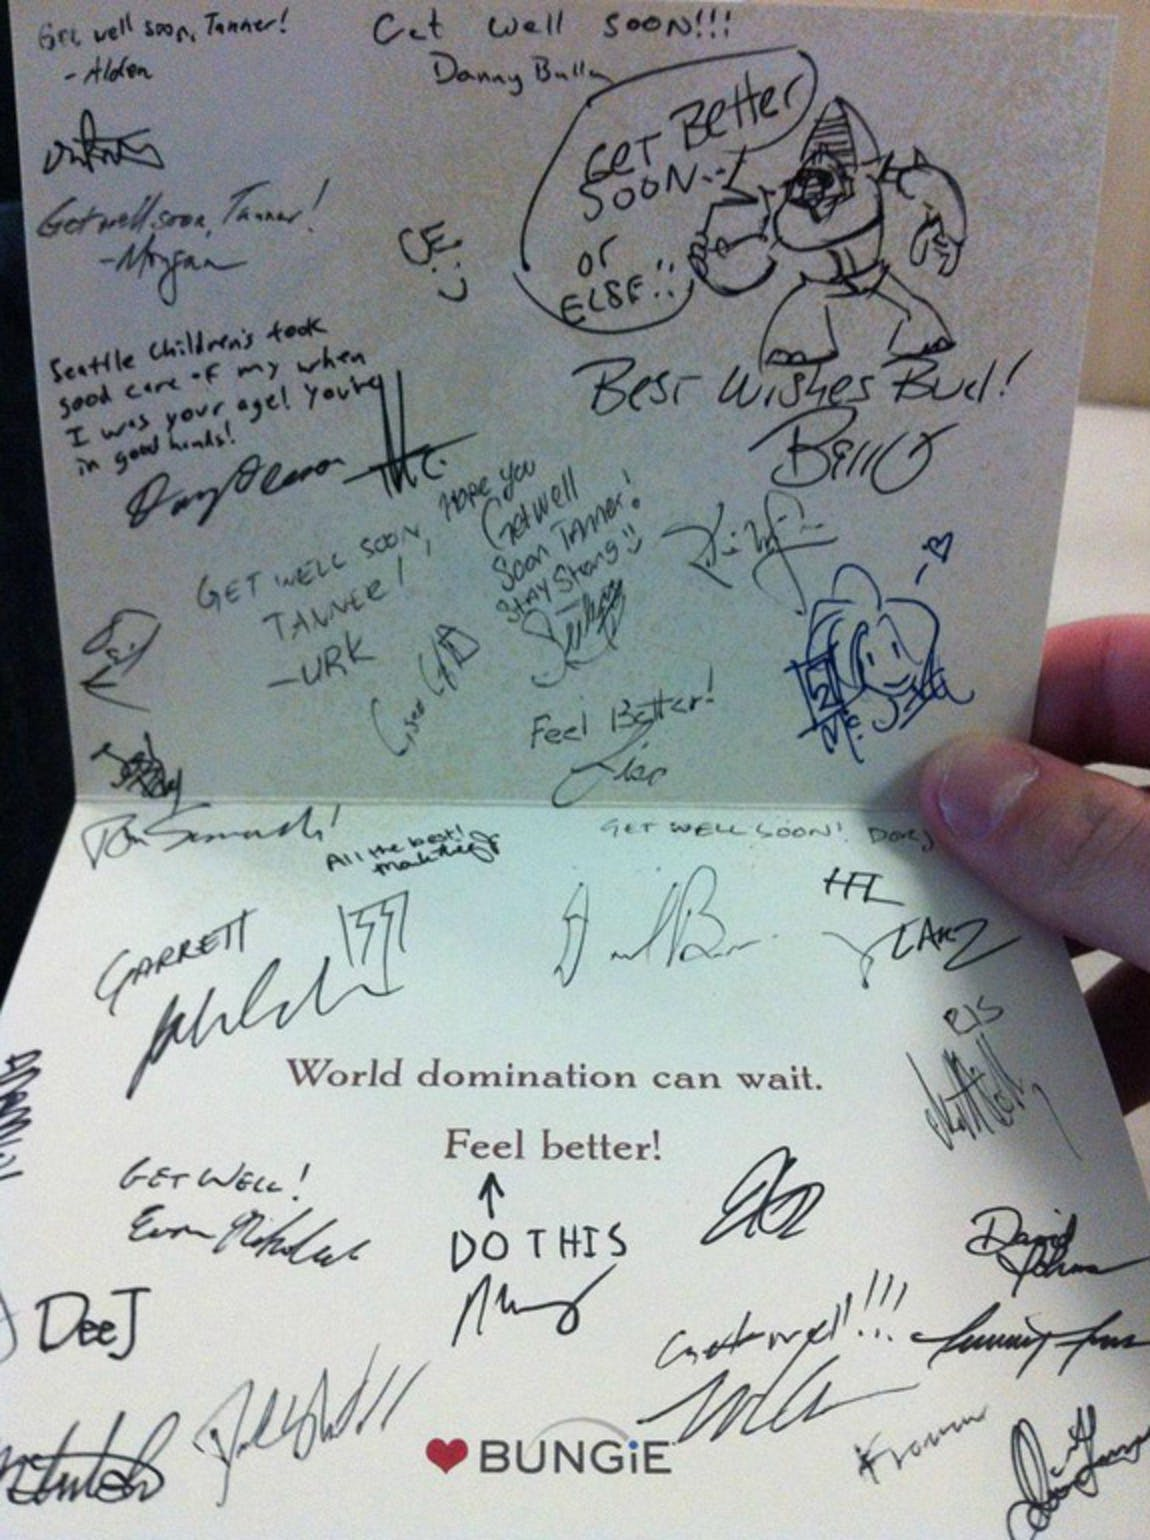 Card from Bungie Studios